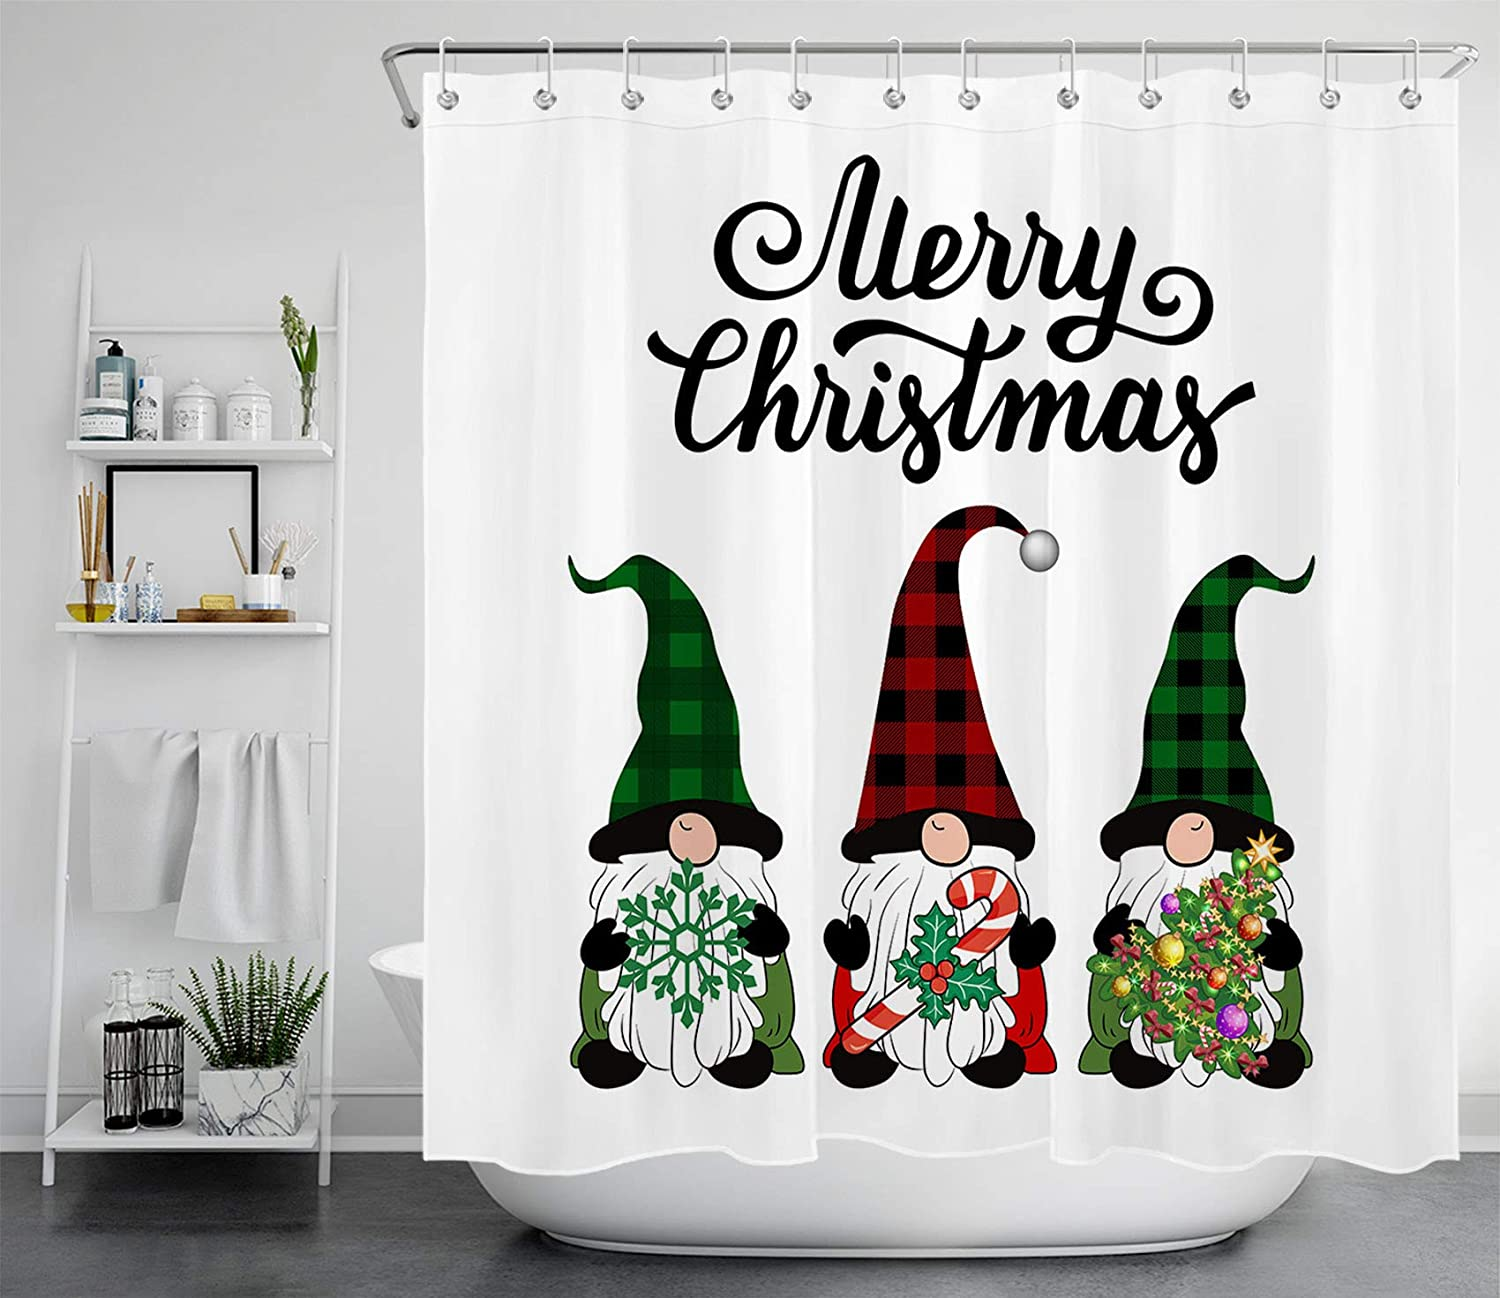 LB Funny Christmas Gnomes Shower Curtain Buffalo Check Plaid Hat Elf Xmas  Tree Canes Snowflake Shower Curtains for Bathroom Decoration Set with Hooks